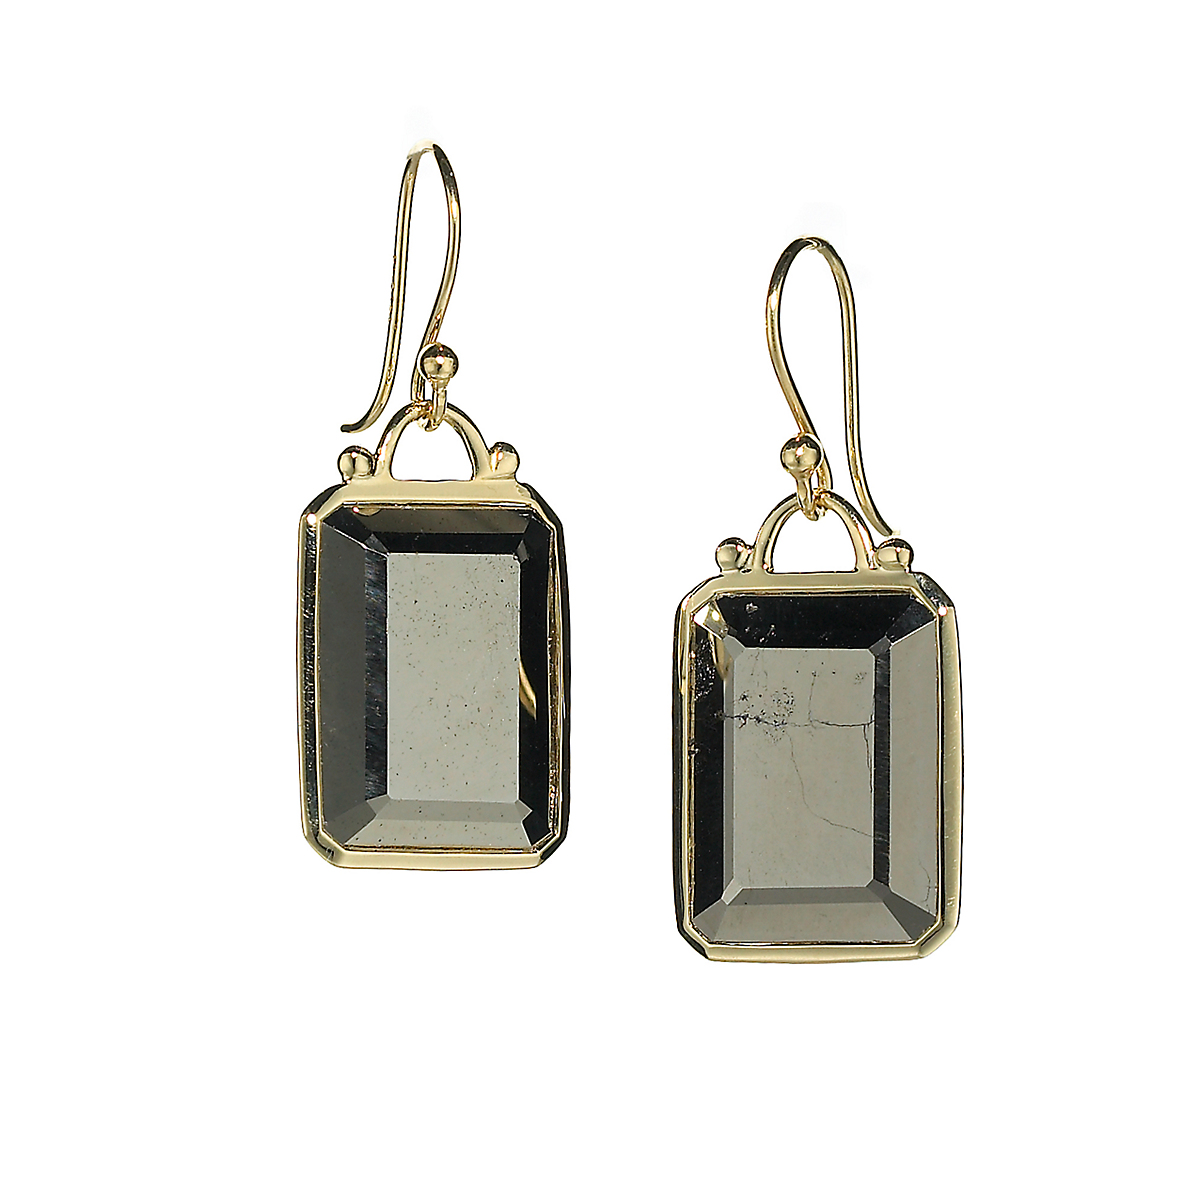 Elizabeth Showers Pyrite Deco Earrings